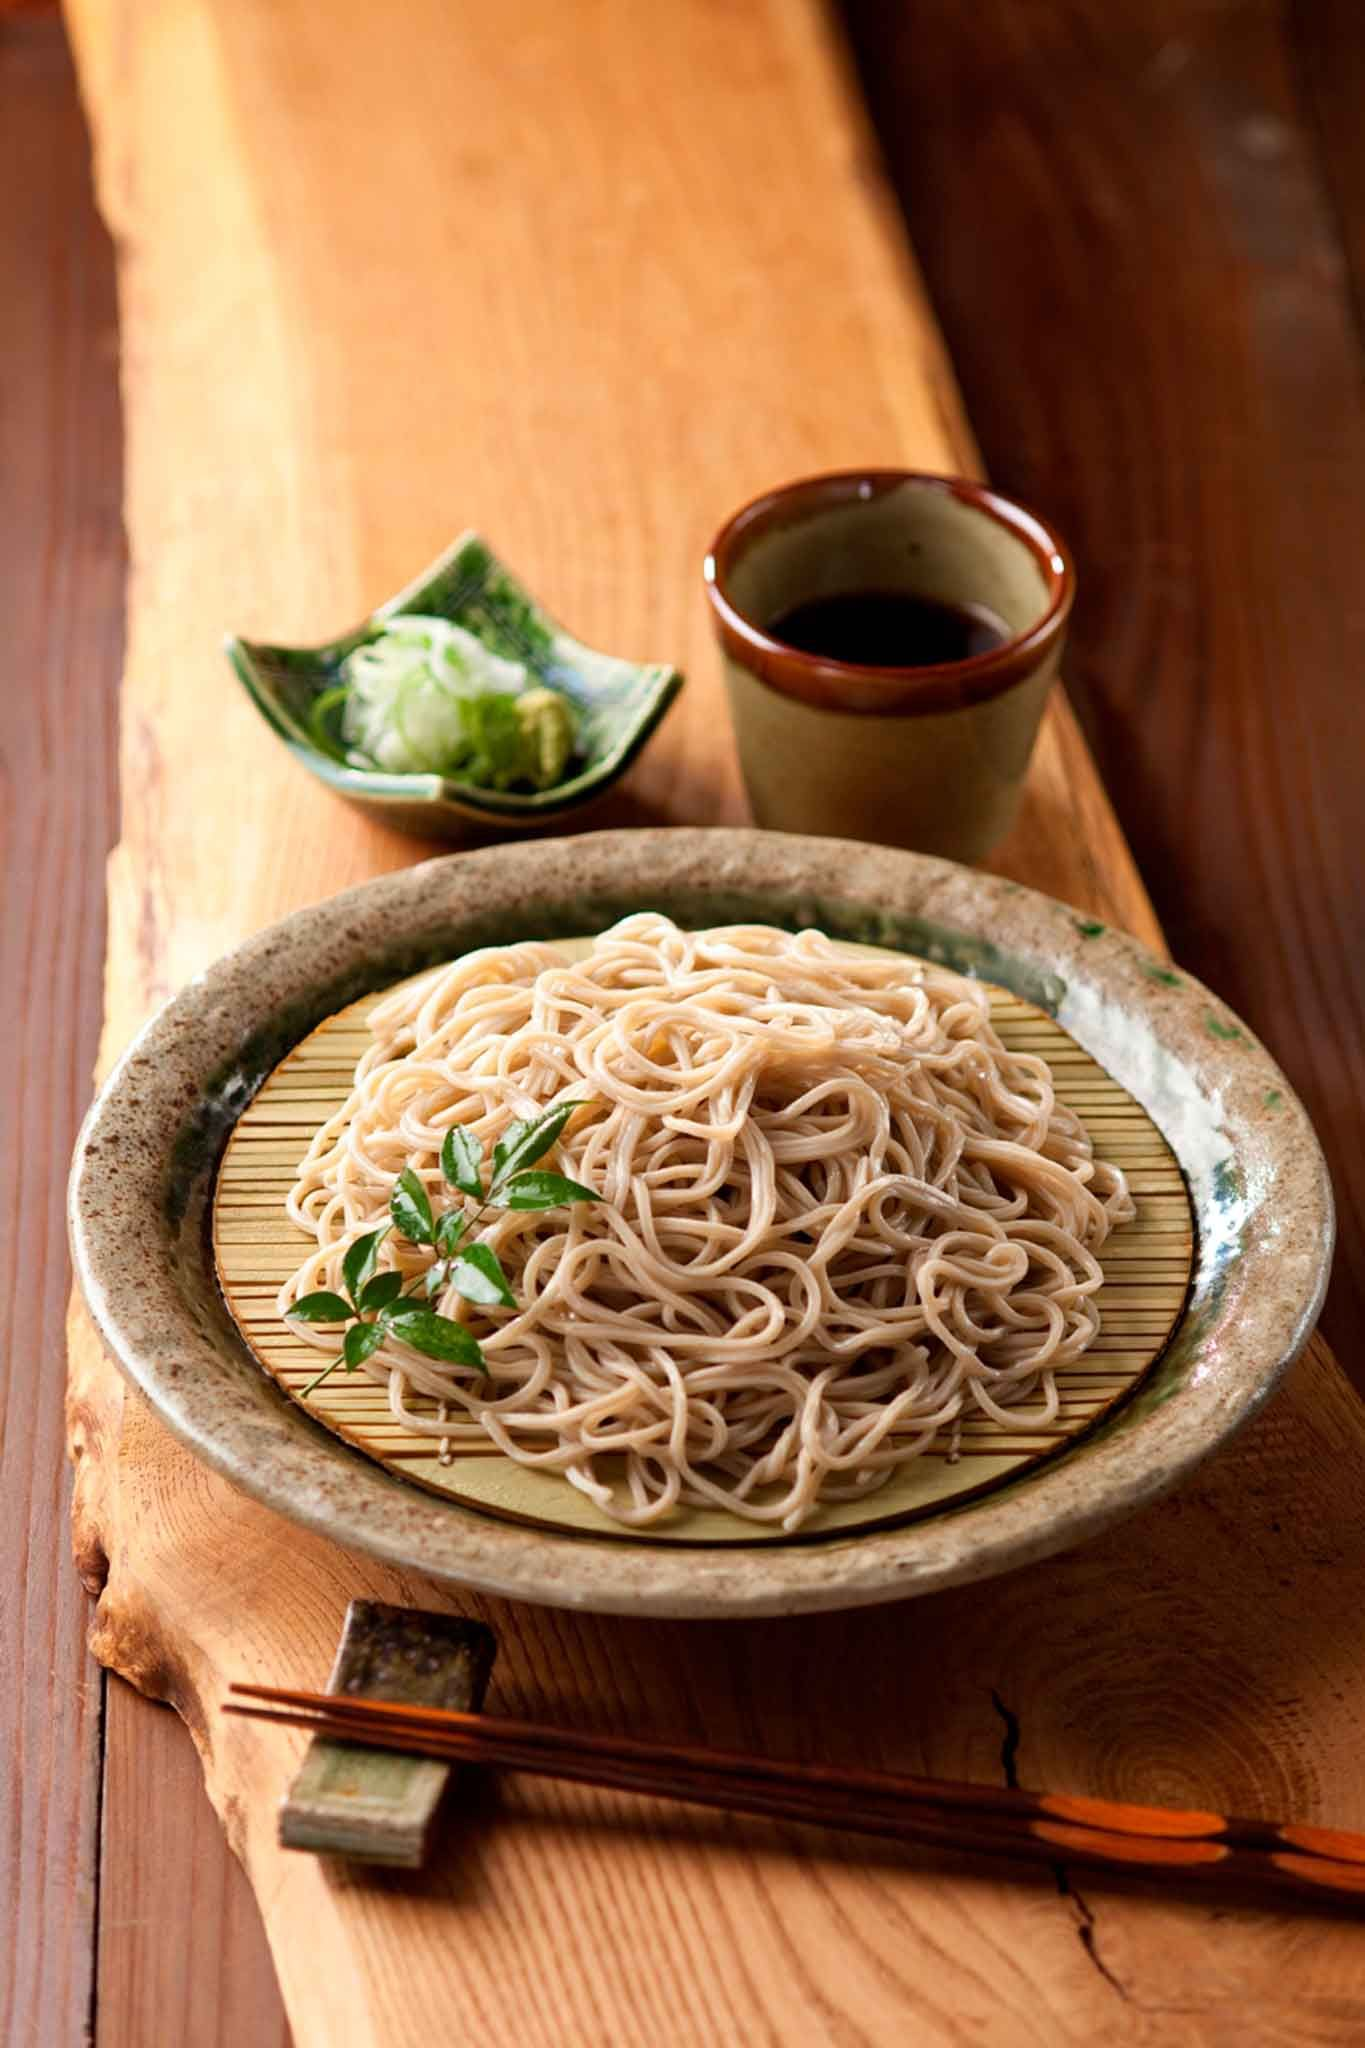 Zaru soba ricette varie soba noodles buckwheat soba for Ricette asiatiche